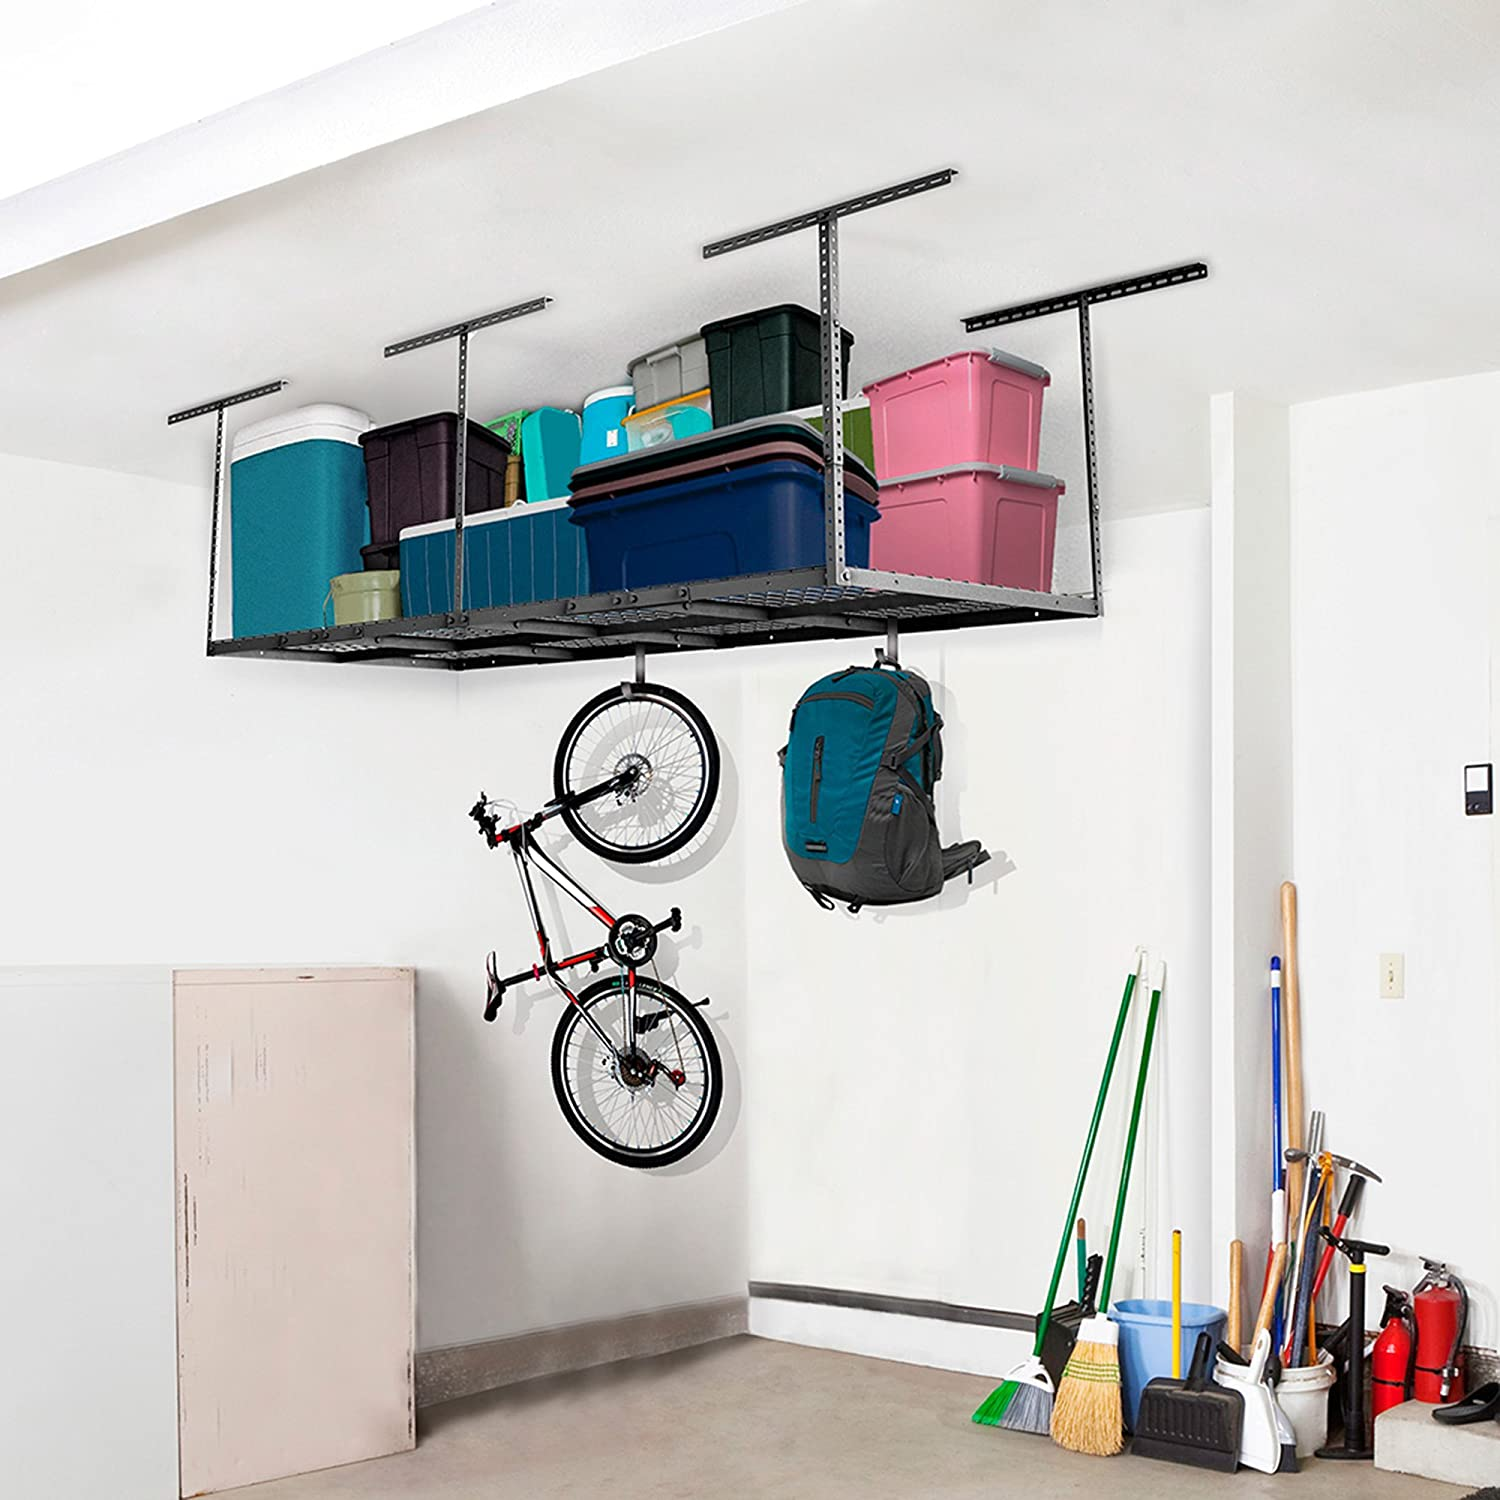 rack size full outrageousacts mounted storage ceiling interior ideas diy design overhead fascinating garage